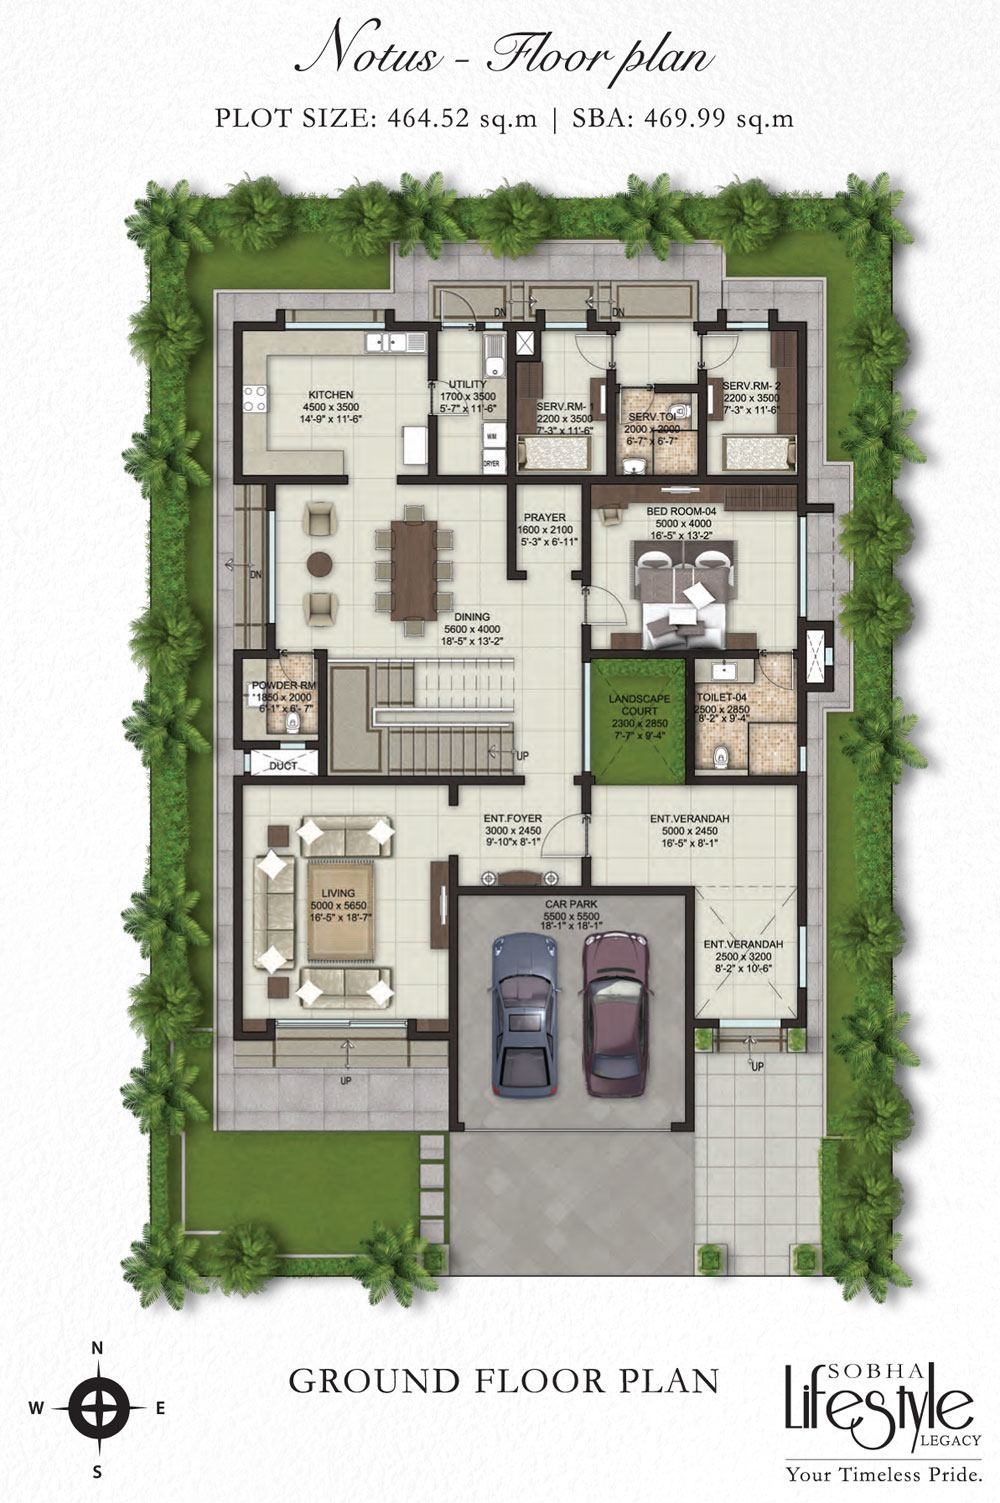 Sobha lifestyle legacy 4 bedroom villas bangalore for Villa architecture design plans